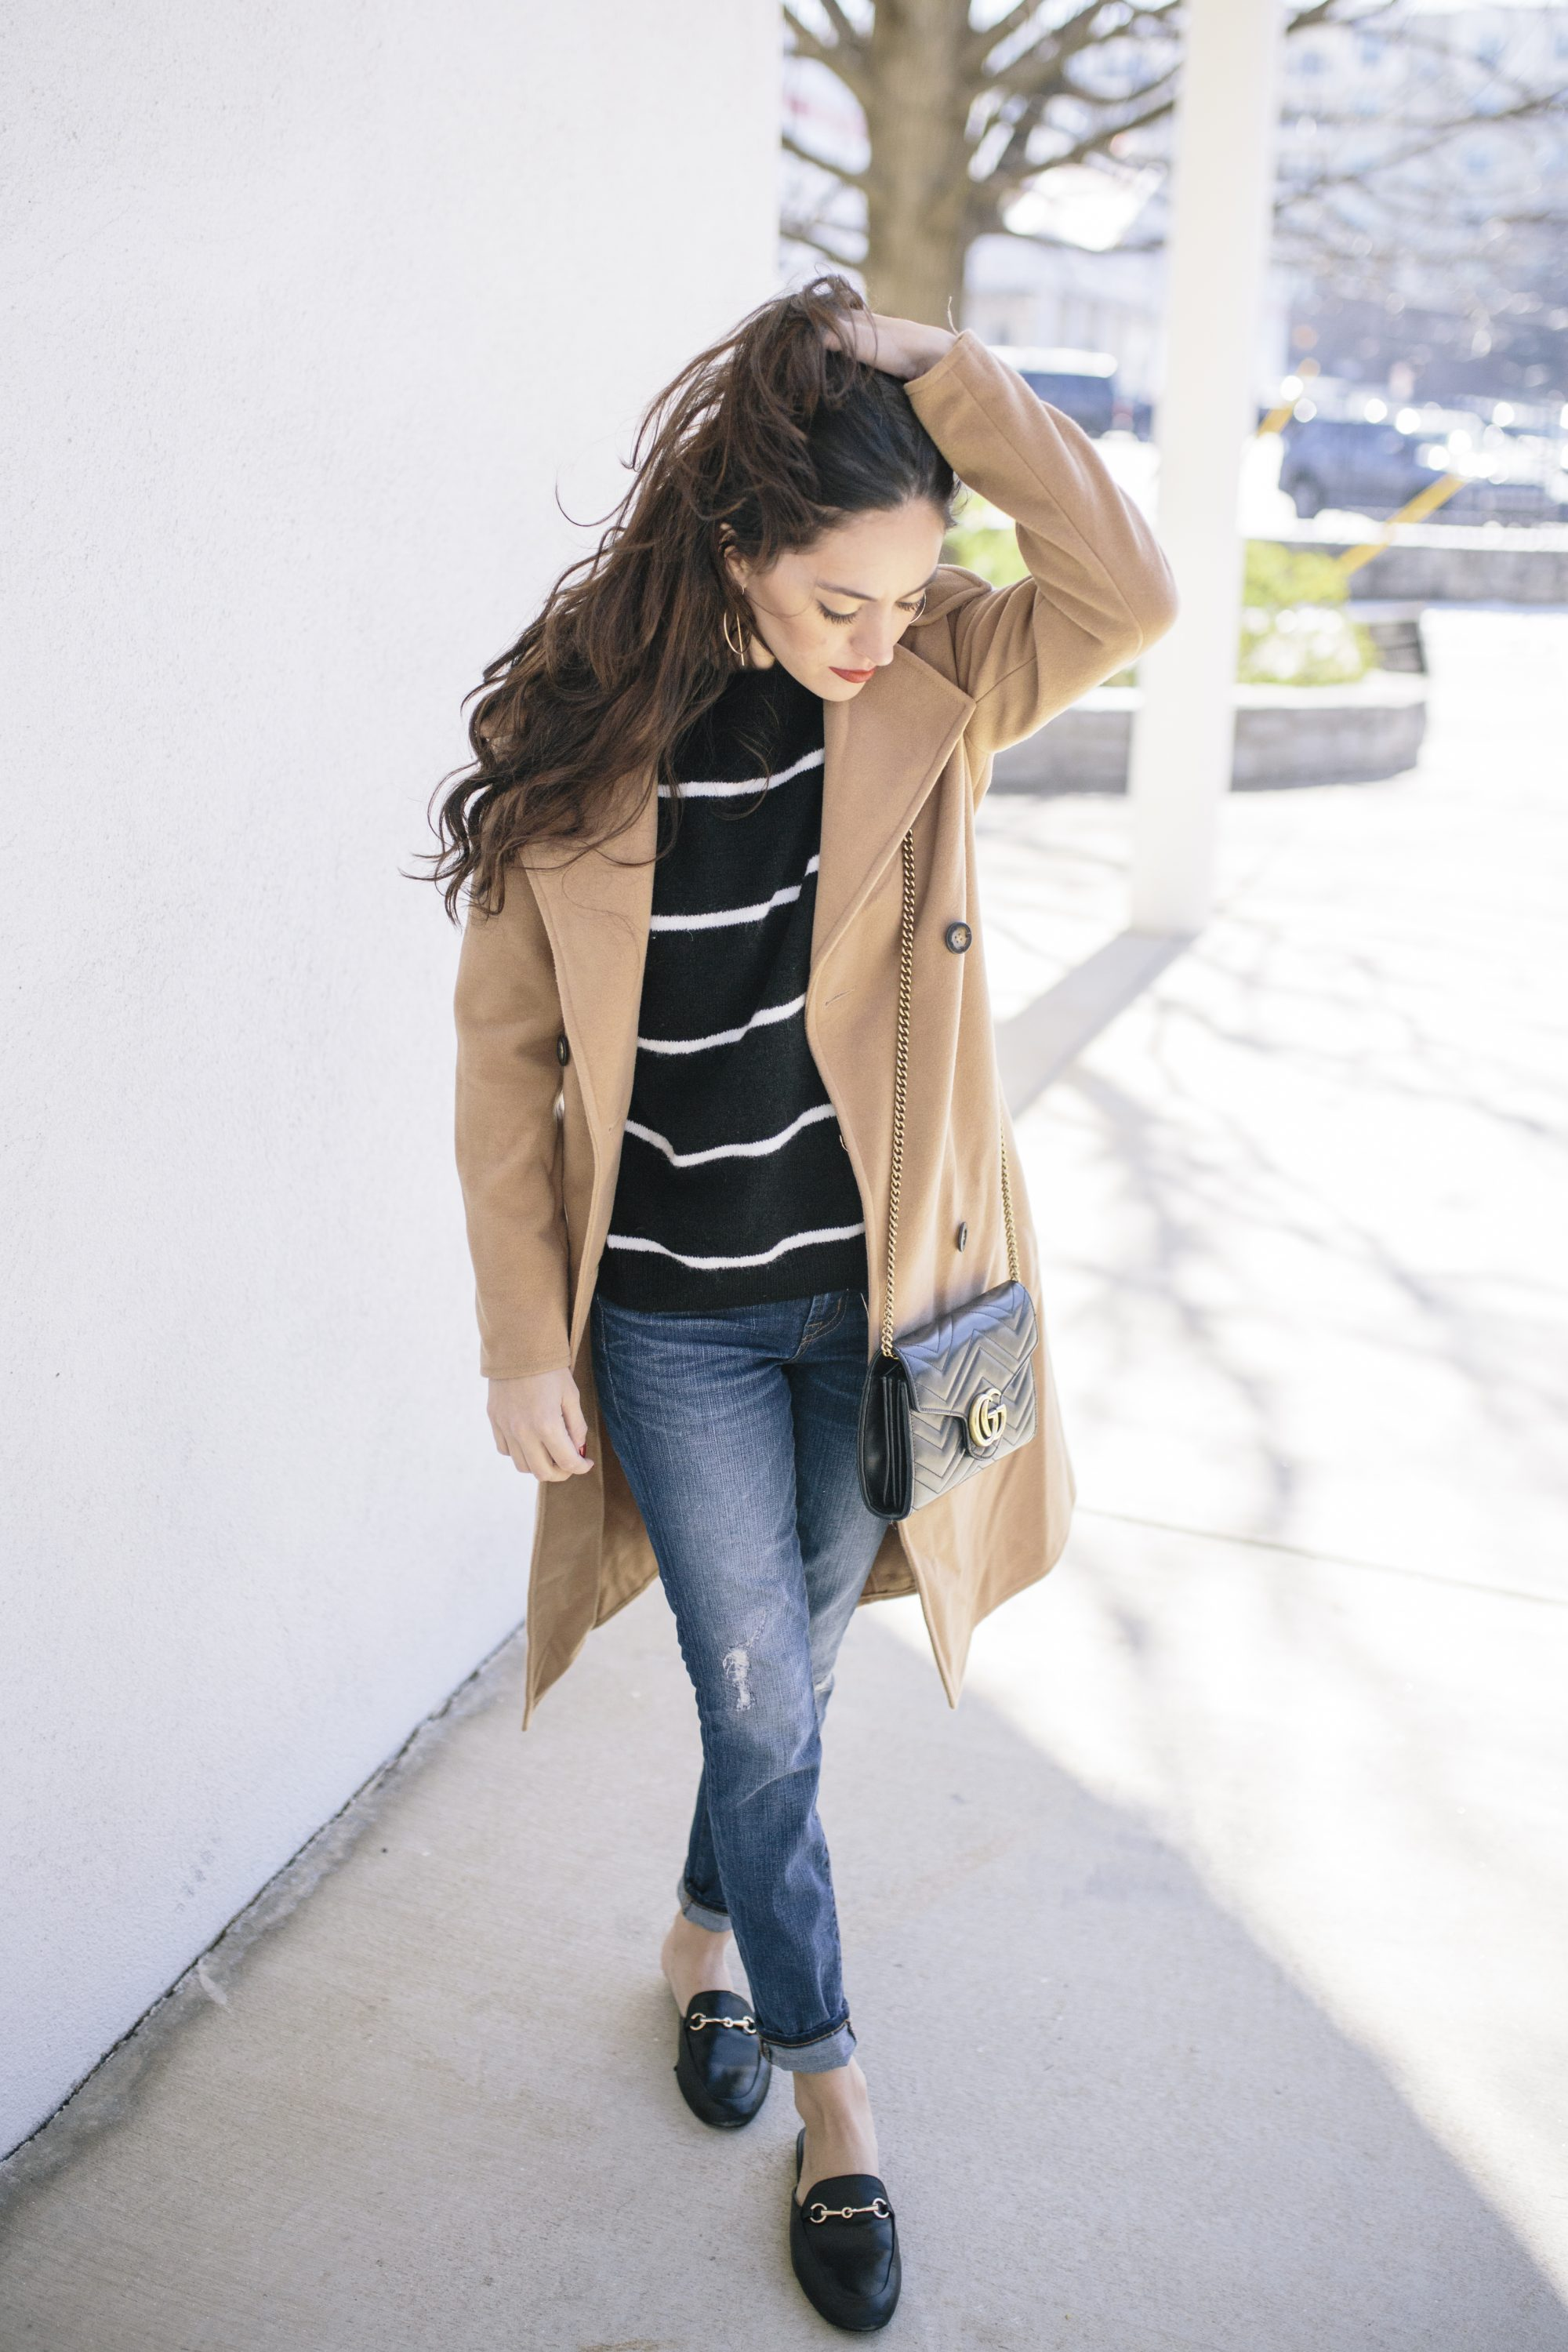 casual stripes, how to style stripes in the winter, casual winter outfit ideas, gucci marmont, j.crew toothpick denim, horsebit slides, tan trench coat, boohoo Petite Erin Belted Wool Look Robe Duster Coat